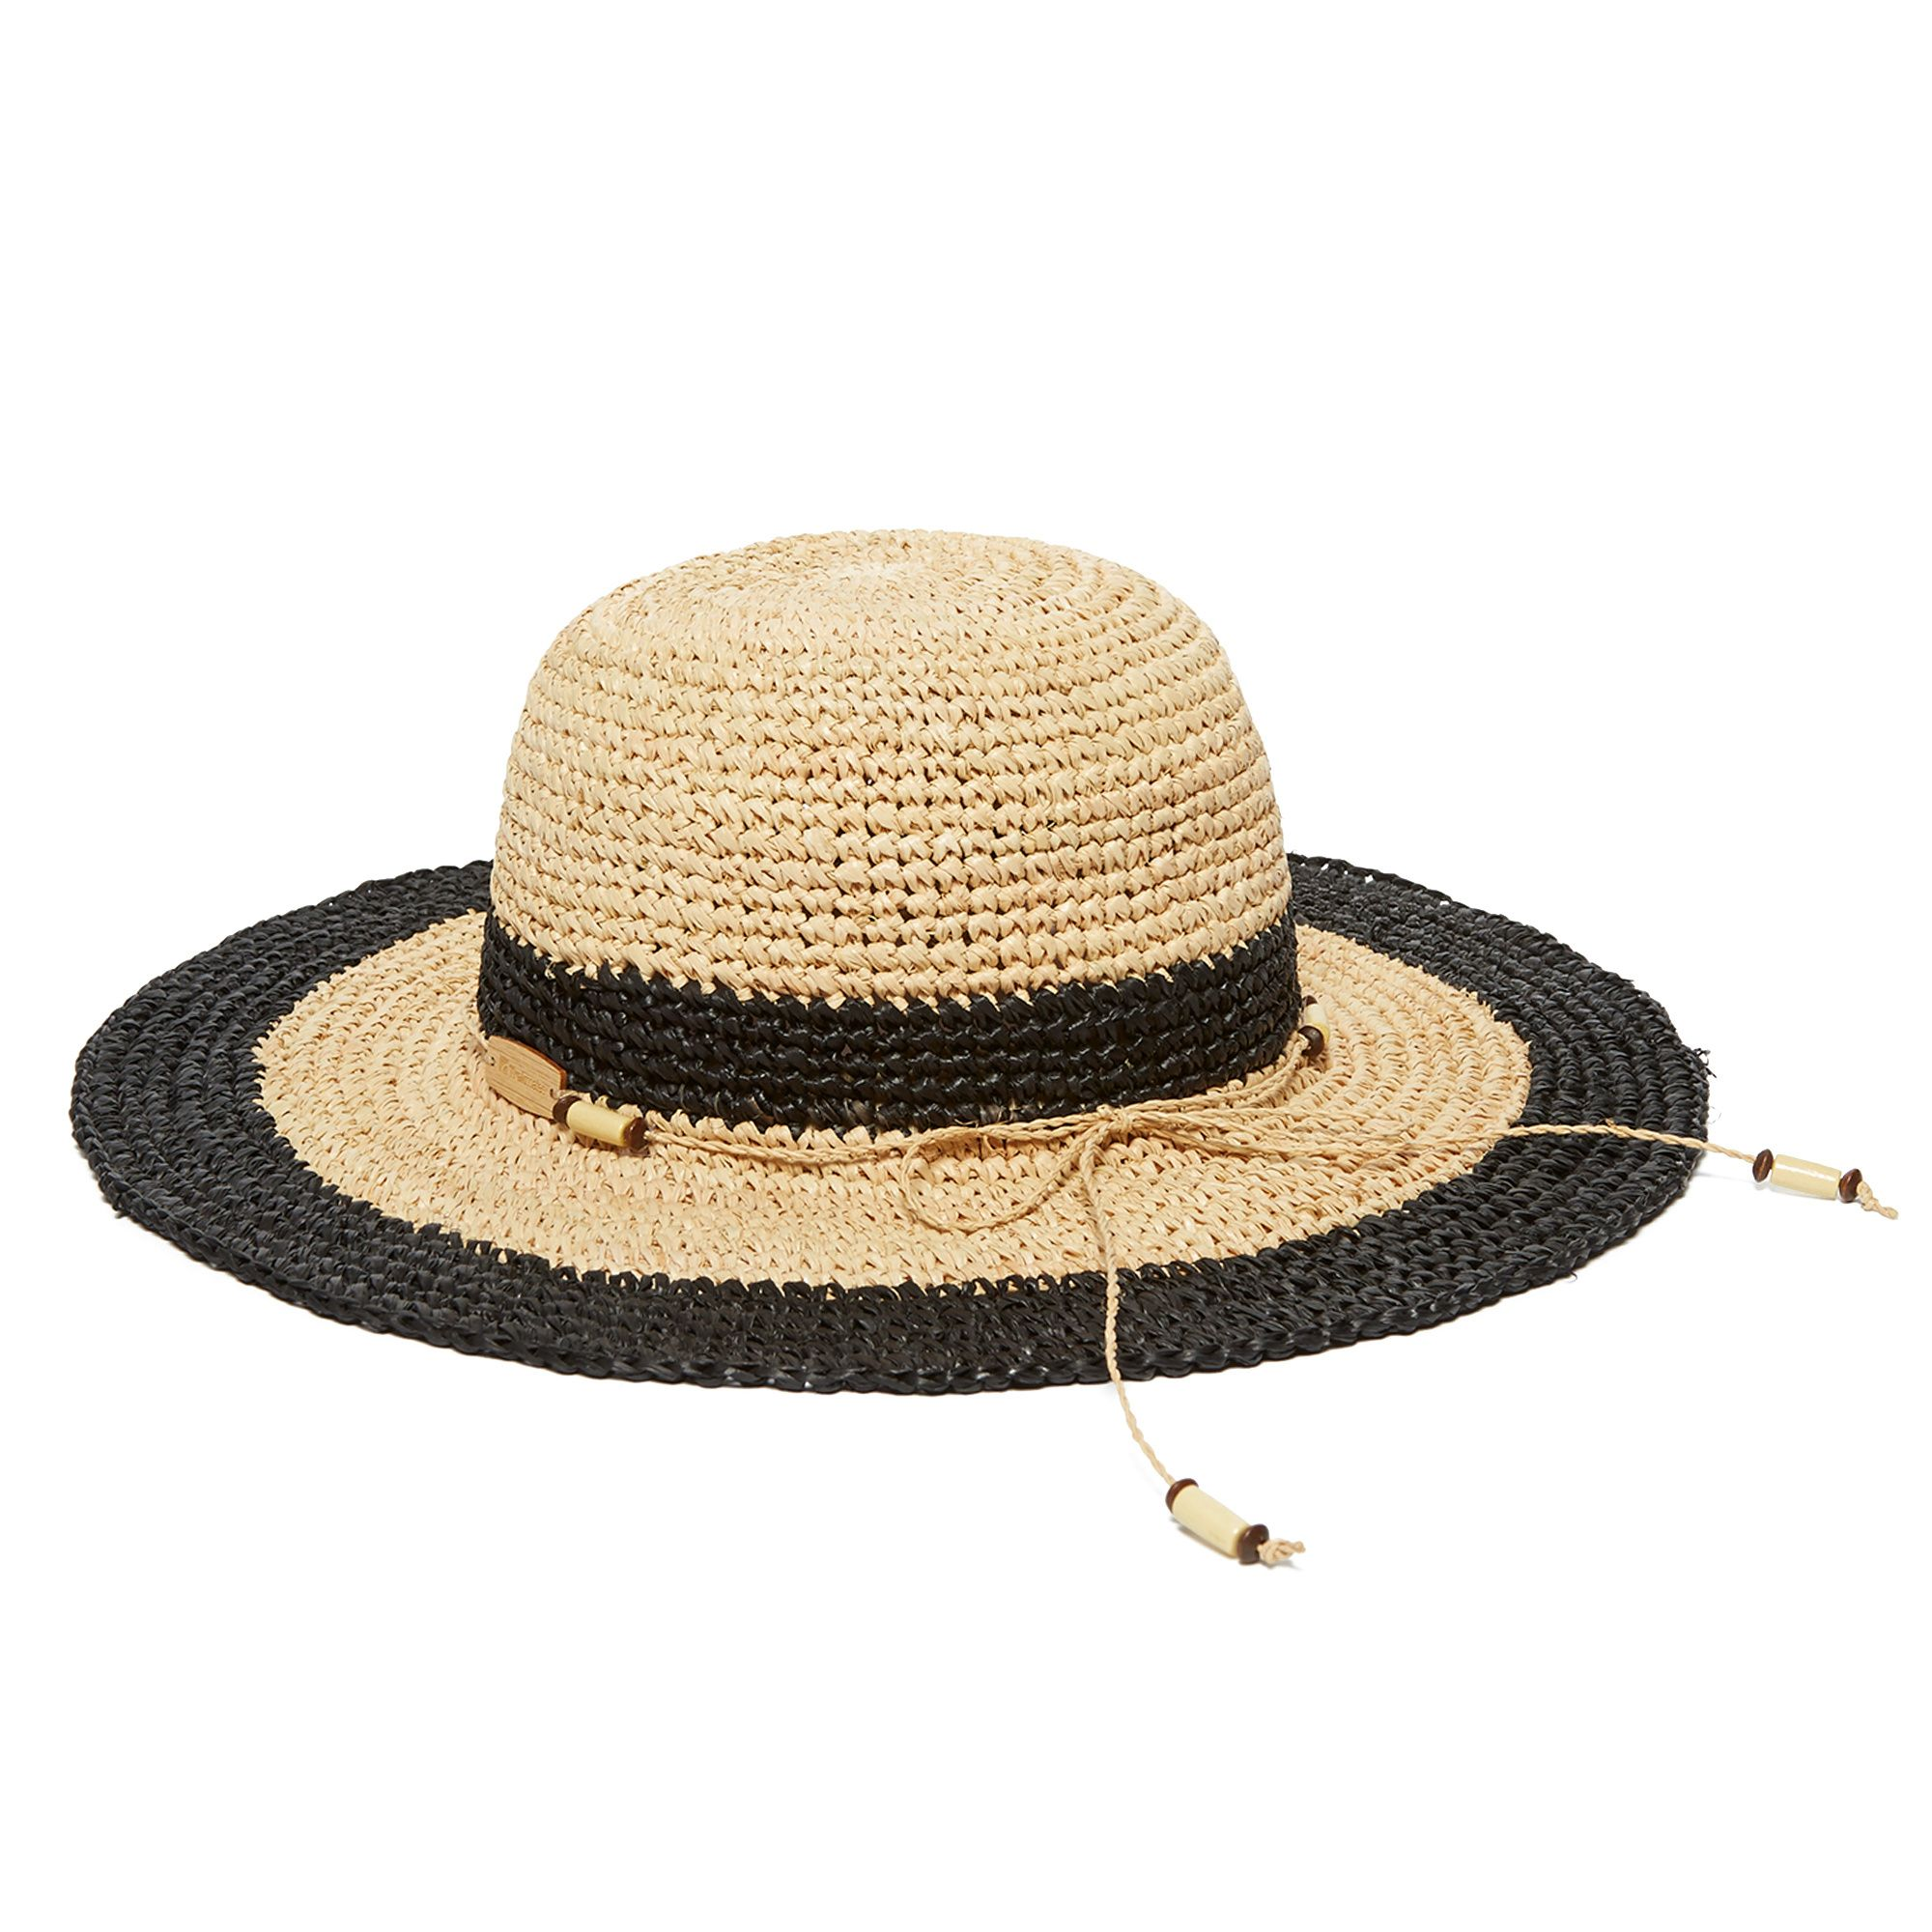 TREKMATES Women's Straw Hat